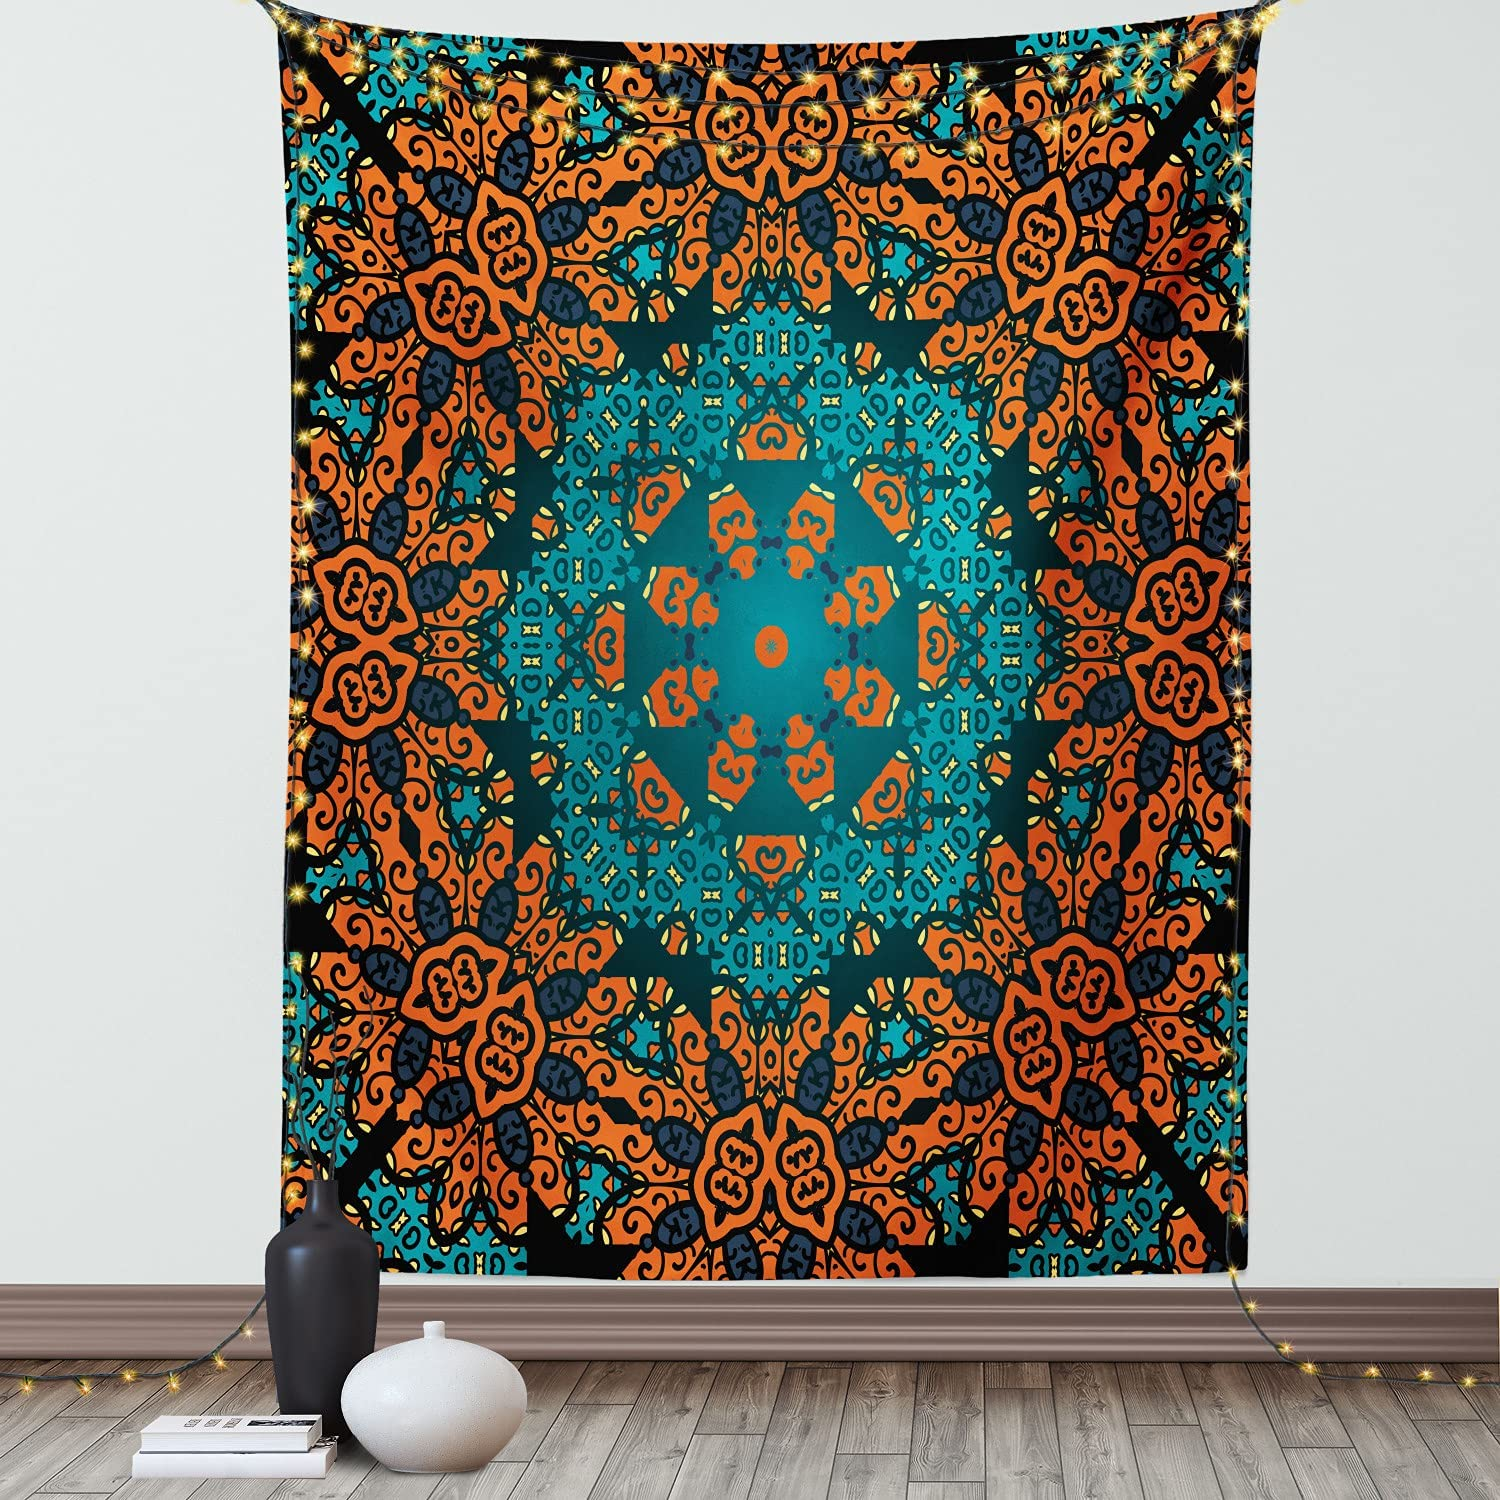 Amazon Com Ambesonne Psychedelic Tapestry Round Flowers Floral Patterns Surreal Motif Boho Hippie Style Image Wall Hanging For Bedroom Living Room Dorm Decor 40 X 60 Teal Orange Home Kitchen